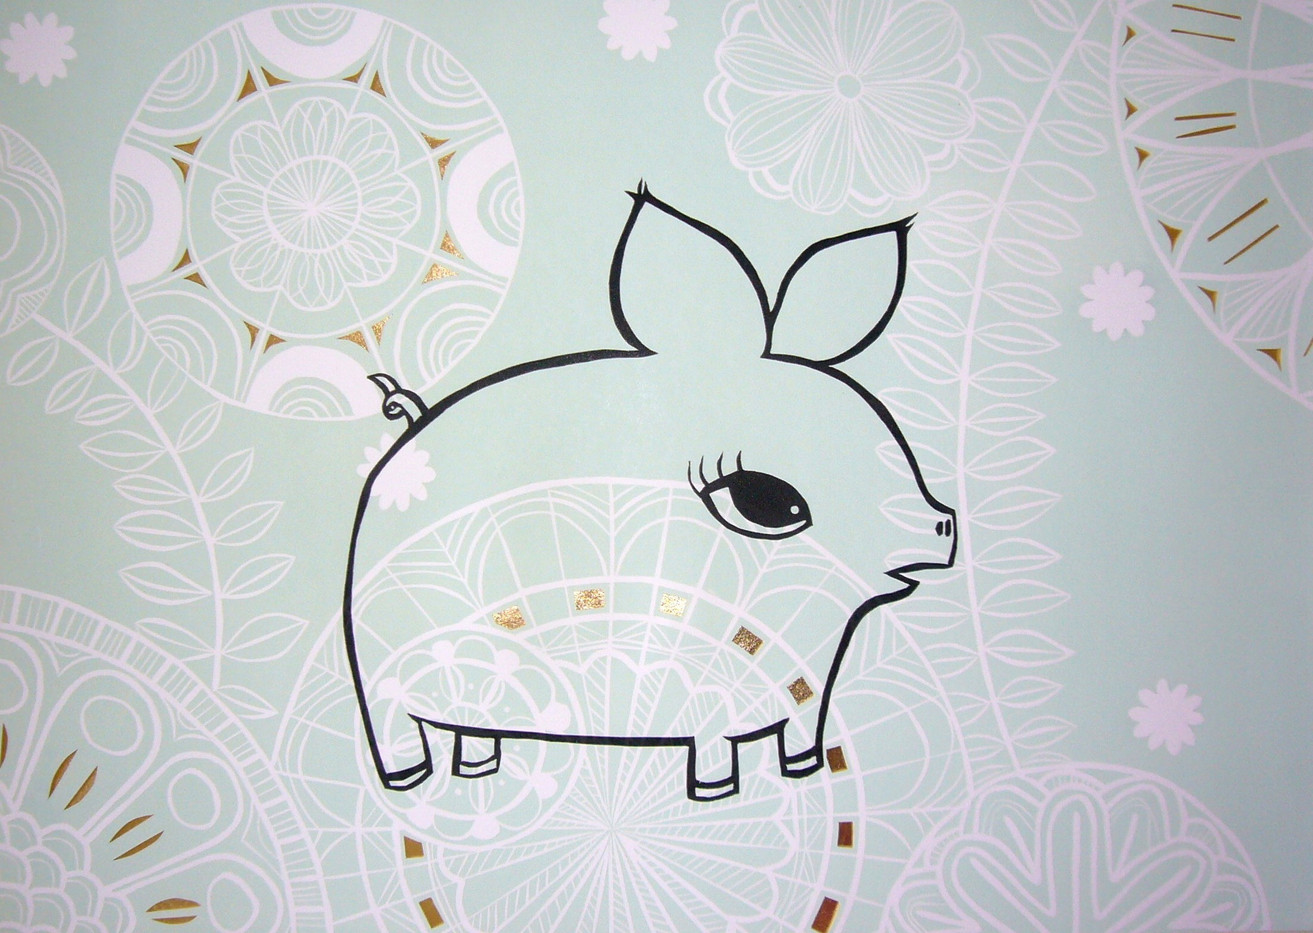 Golden Piglet, wood cut print with gold leaf detail, 50 x 70cm